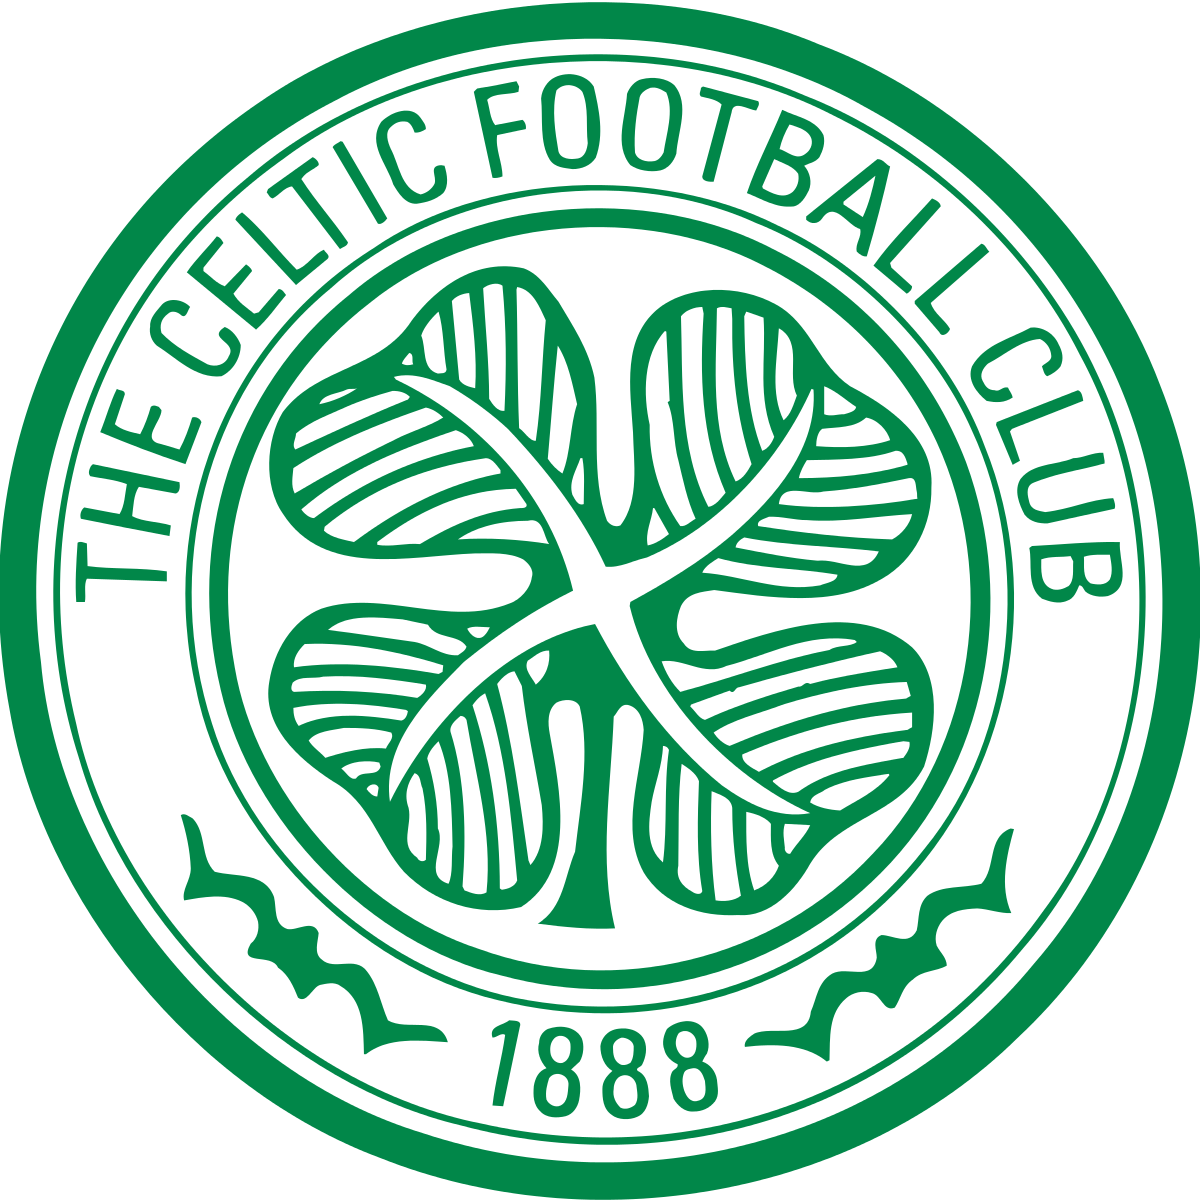 Celtic are one of the most successful European football clubs of all time